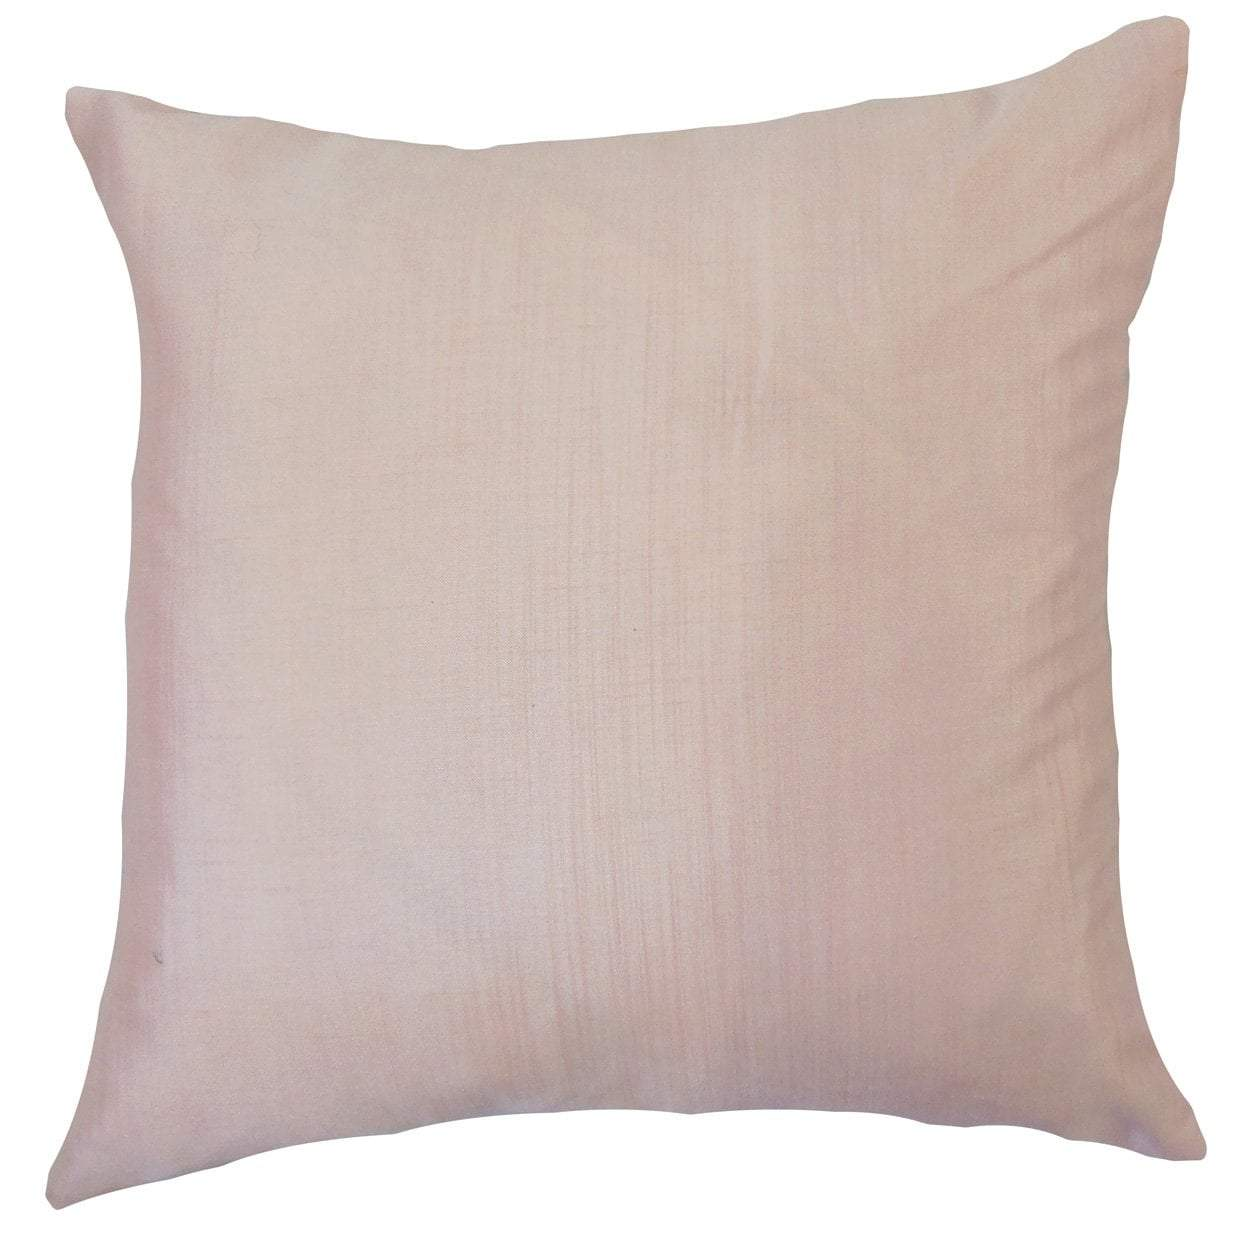 Tan Synthetic Solid Contemporary Throw Pillow Cover